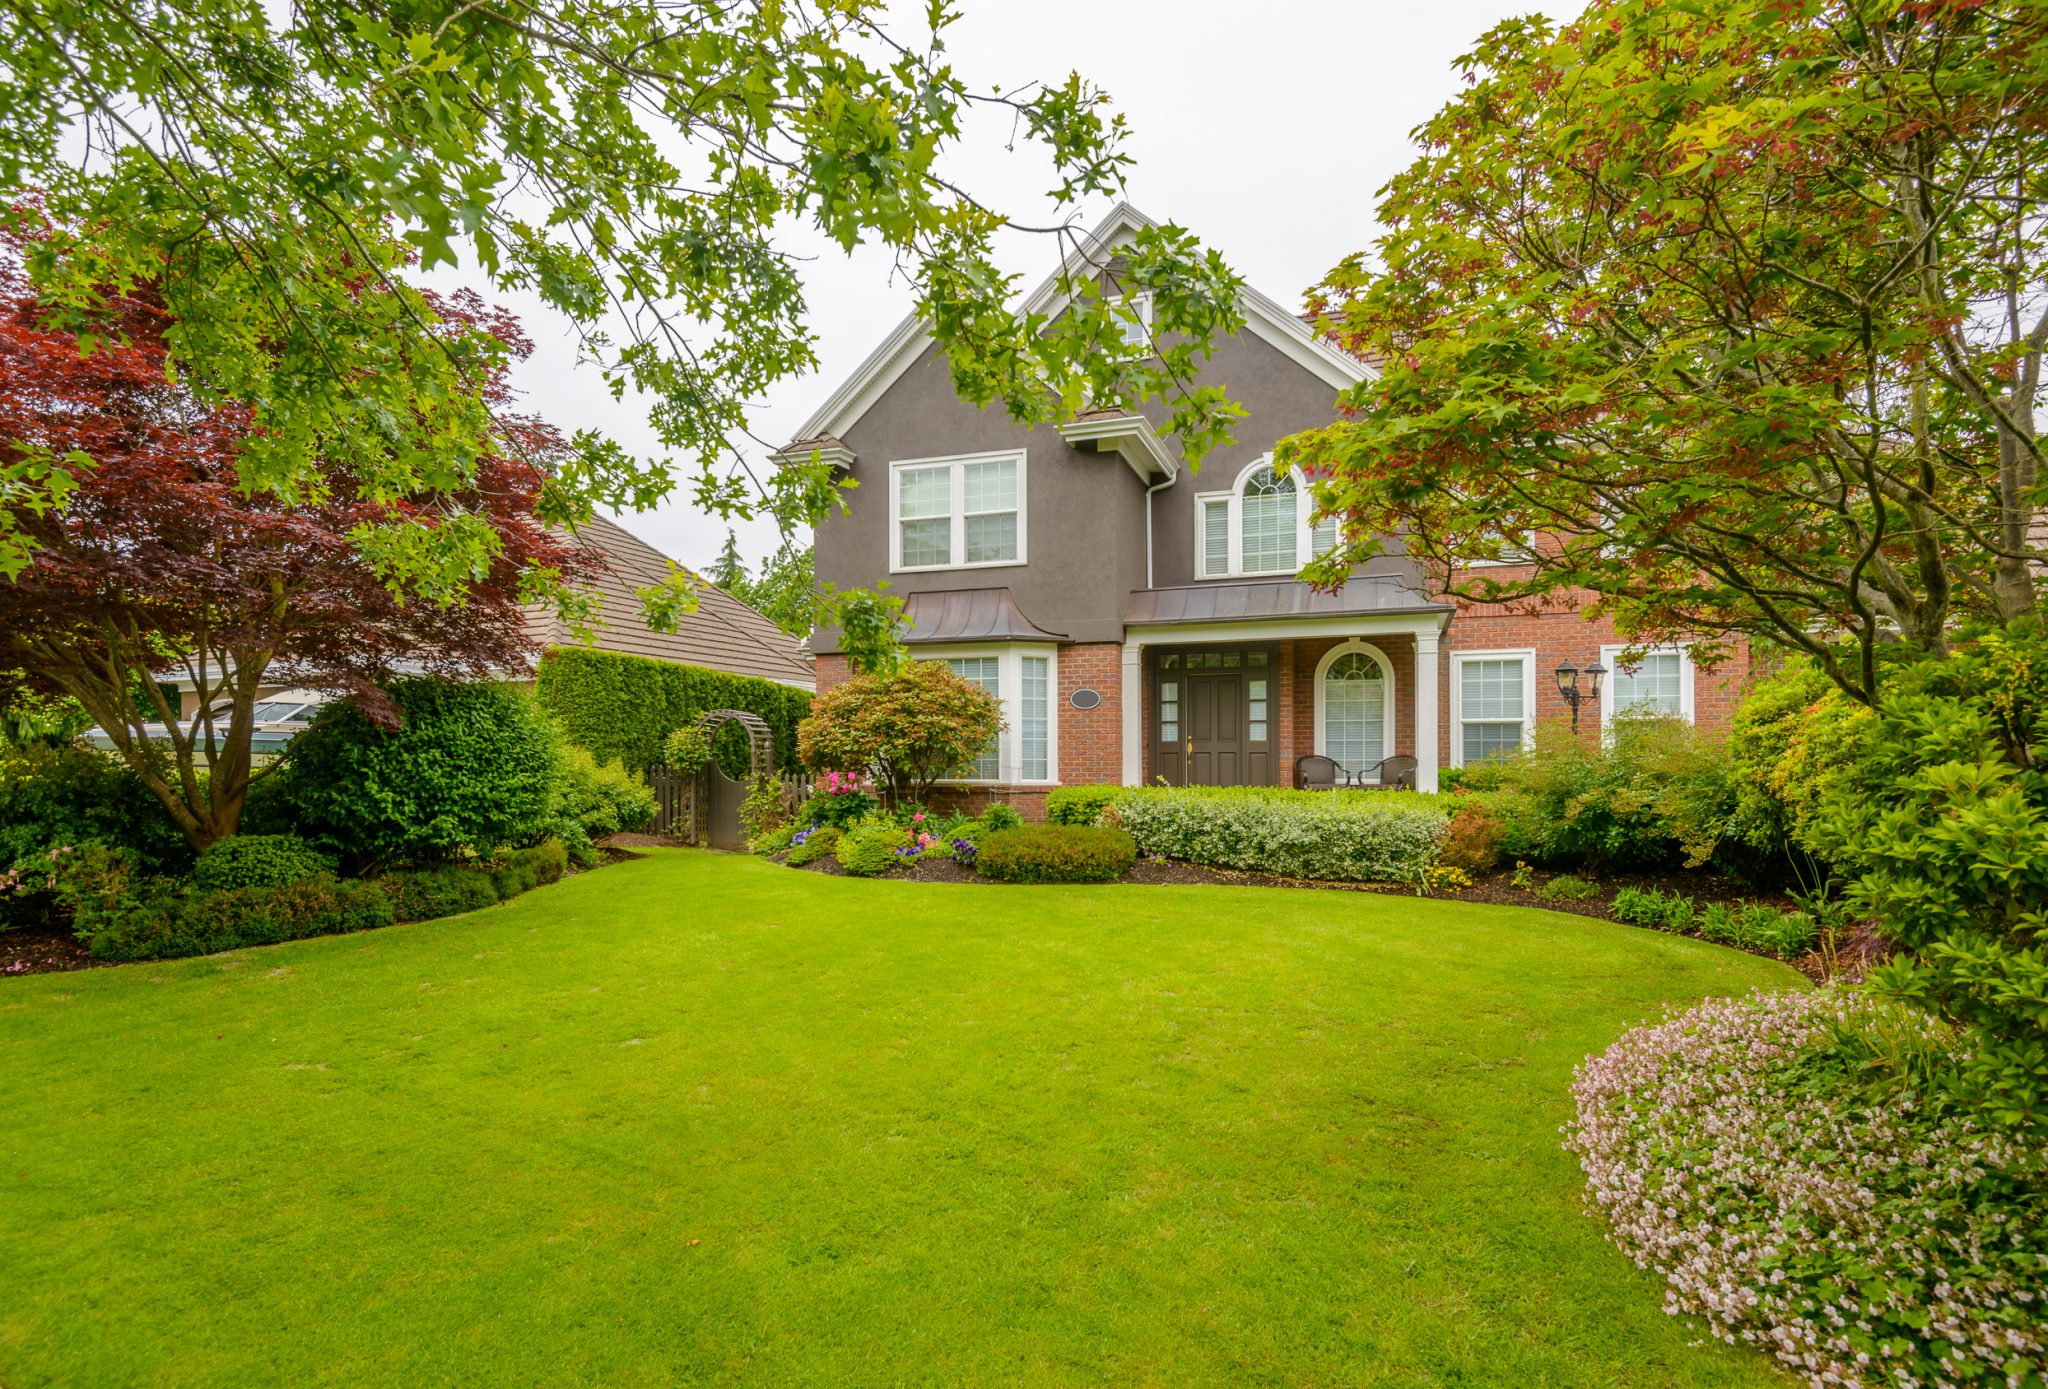 Home with mature landscaping